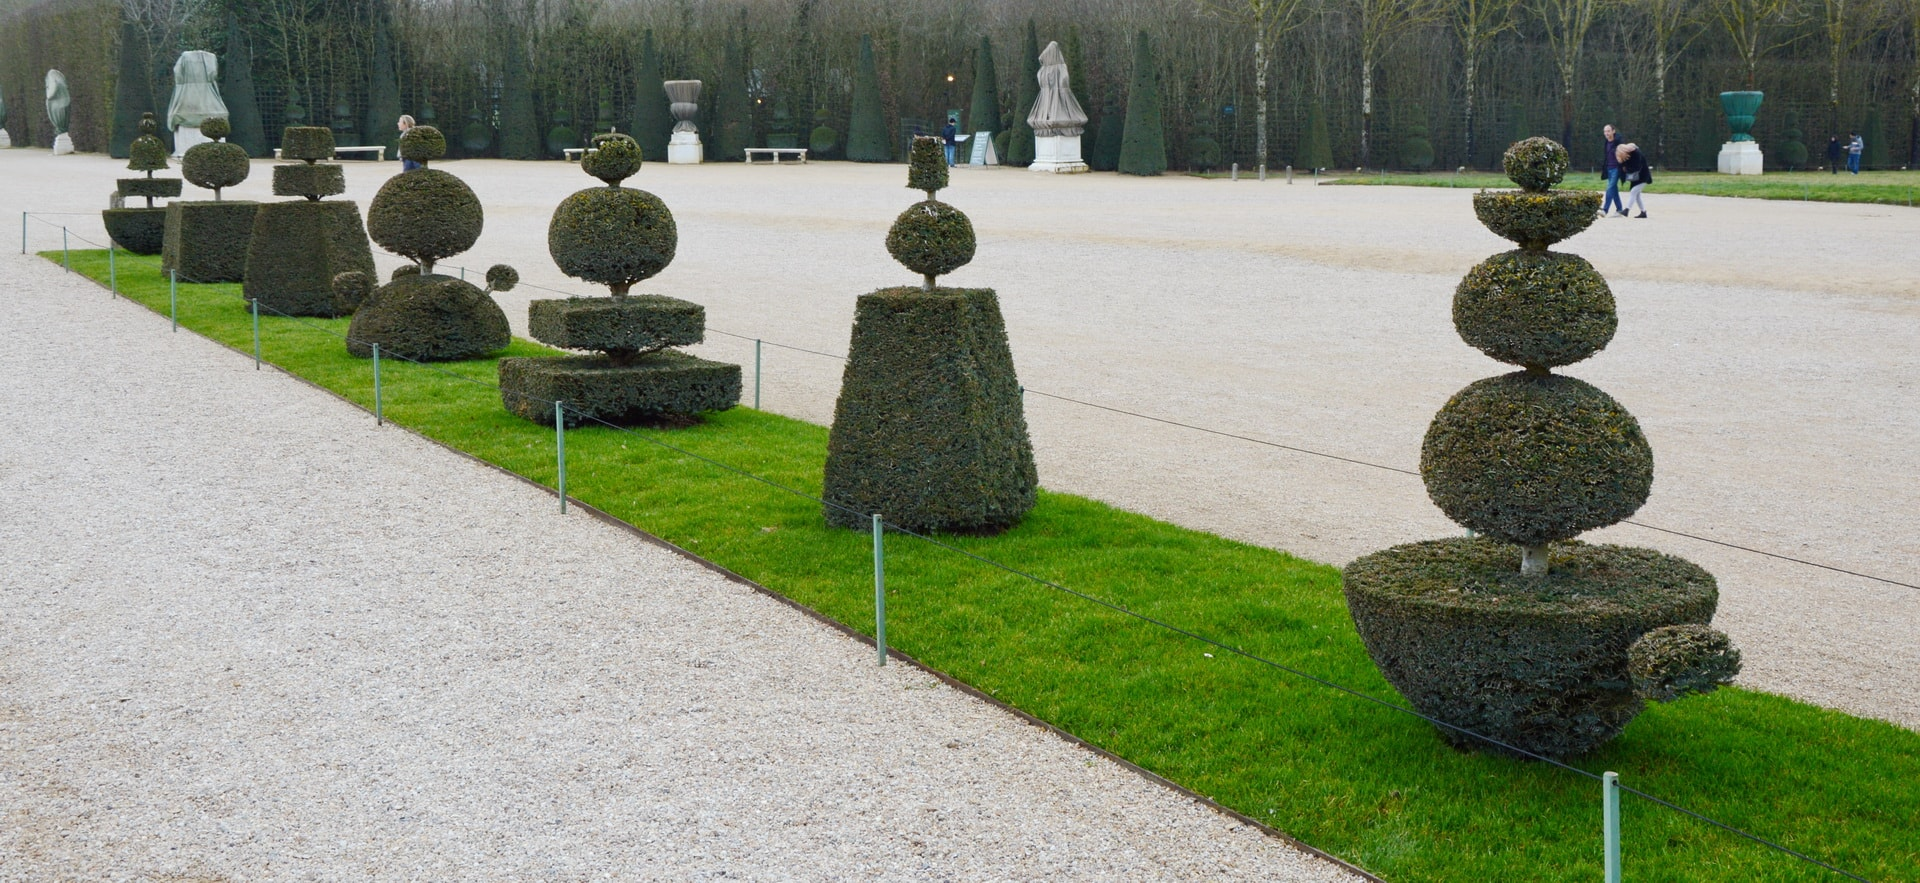 You can't find two alike trees in the gardens of the Versailles Palace